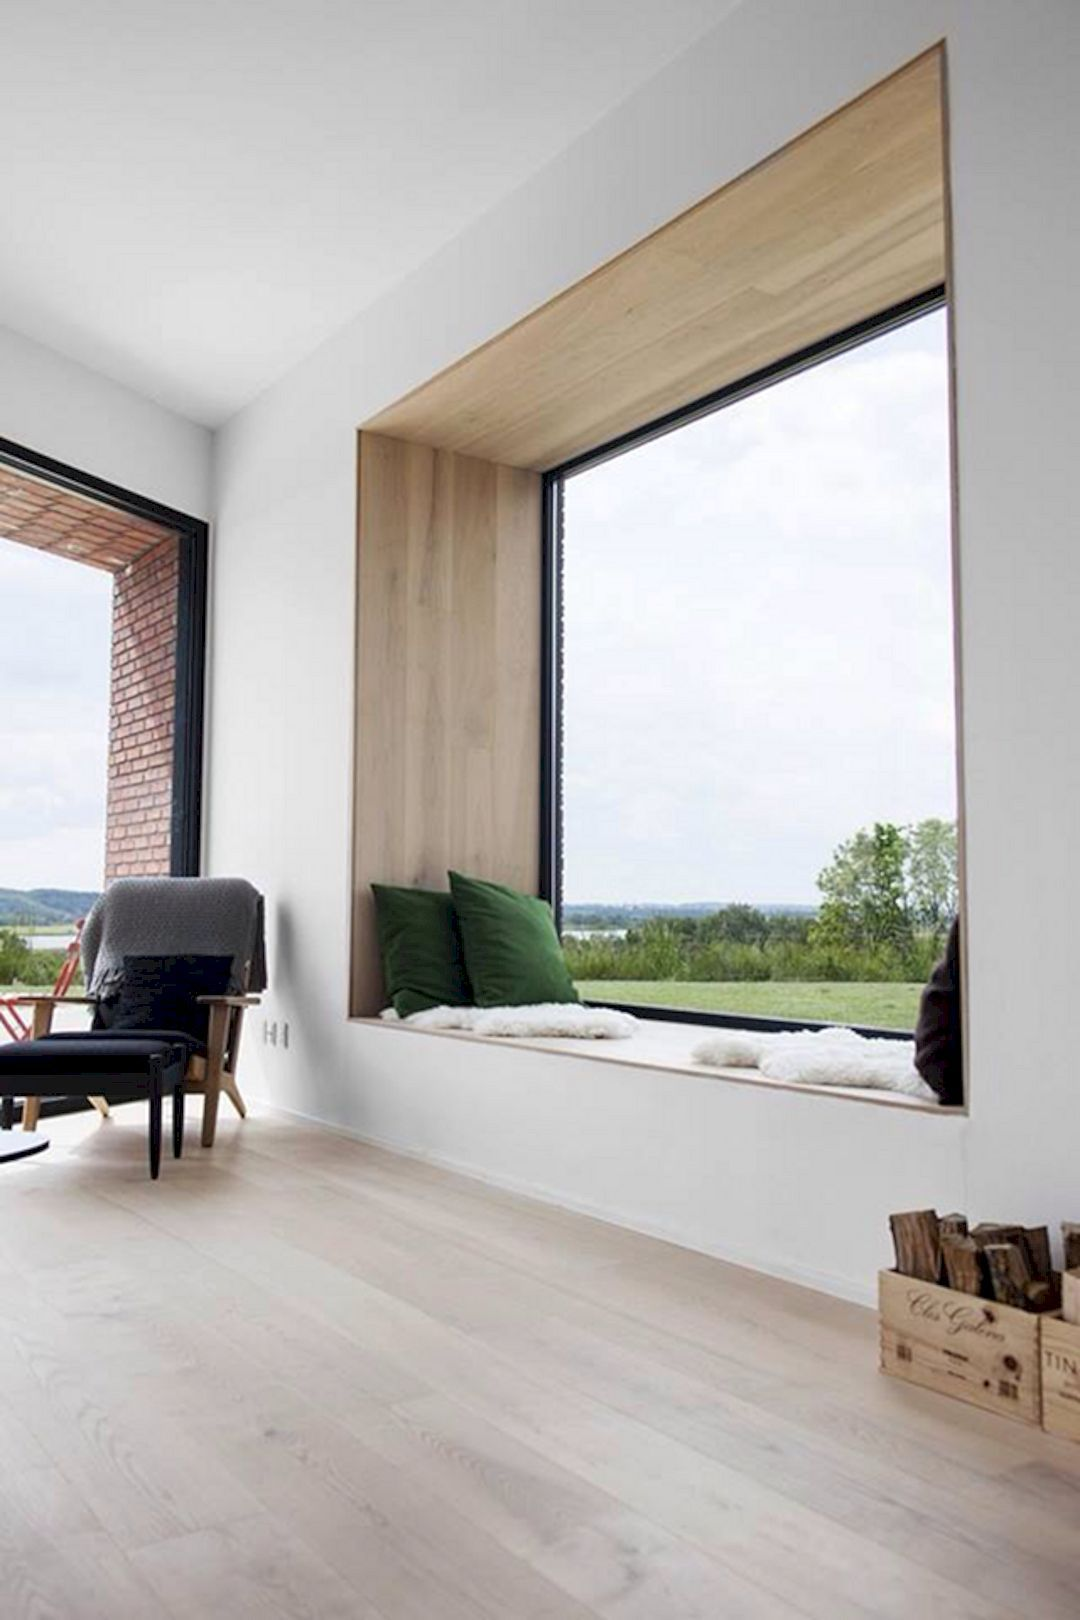 Business Design A House And Window: Avenir: A New Building With Interesting Bay Windows And Deep Blue Translucent Glass